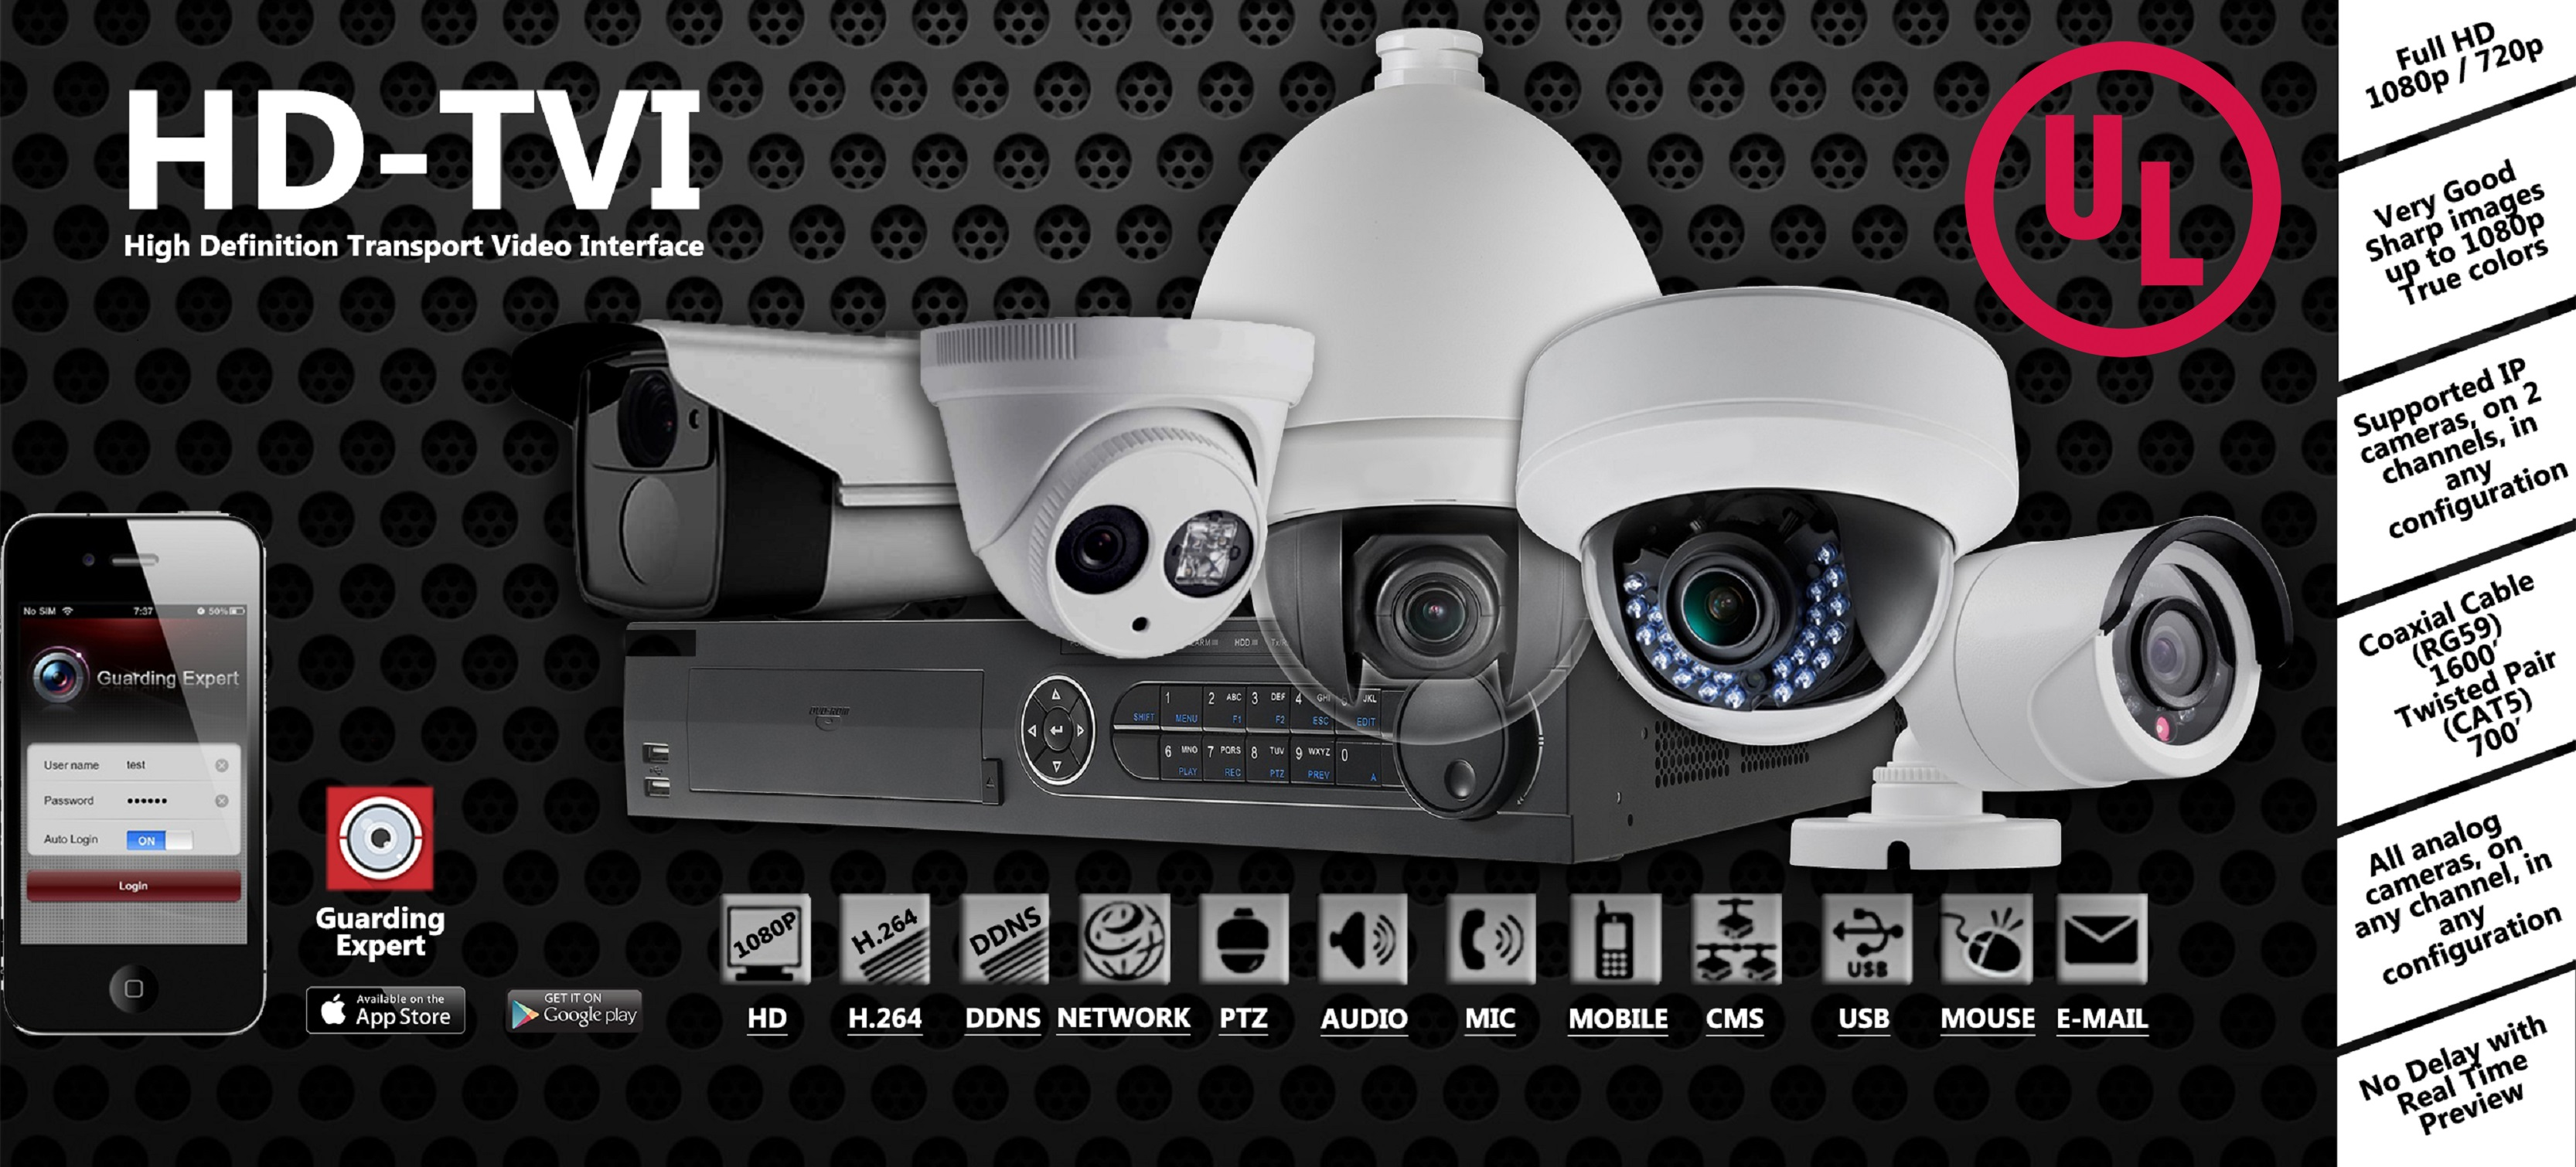 Cctv security cameras distributor in west palm beach for Ip camera design tool